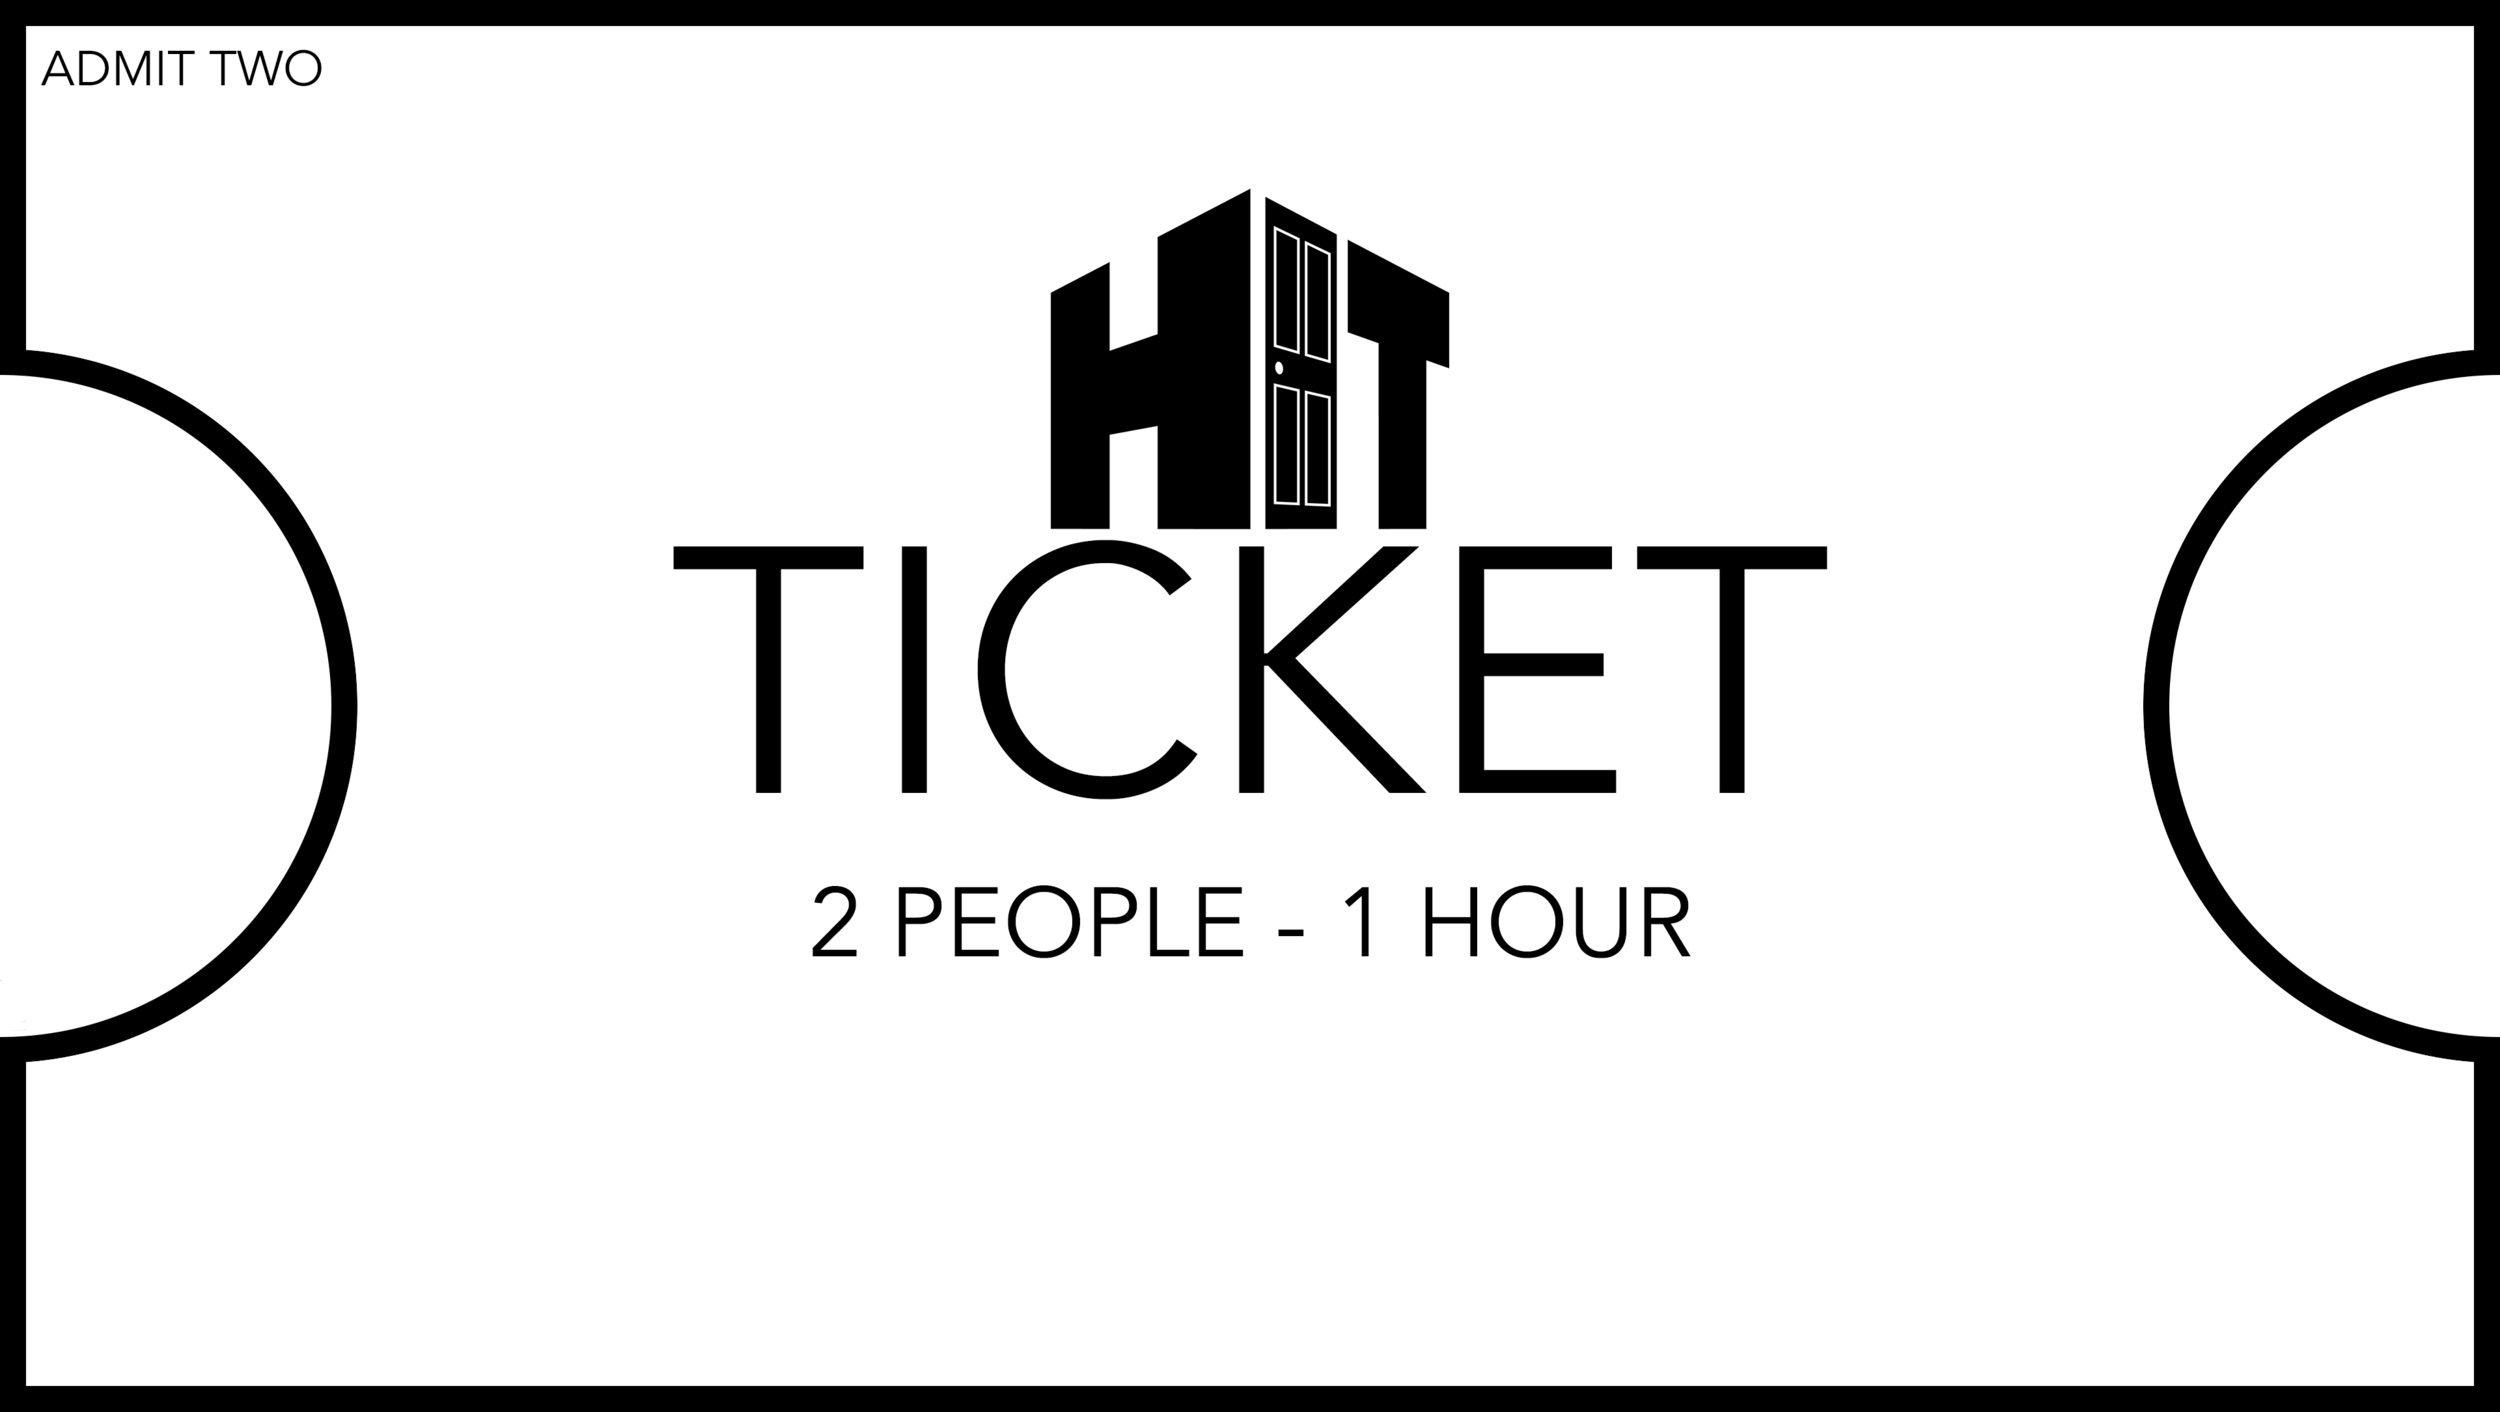 HIT_TICKET_2P1H.png